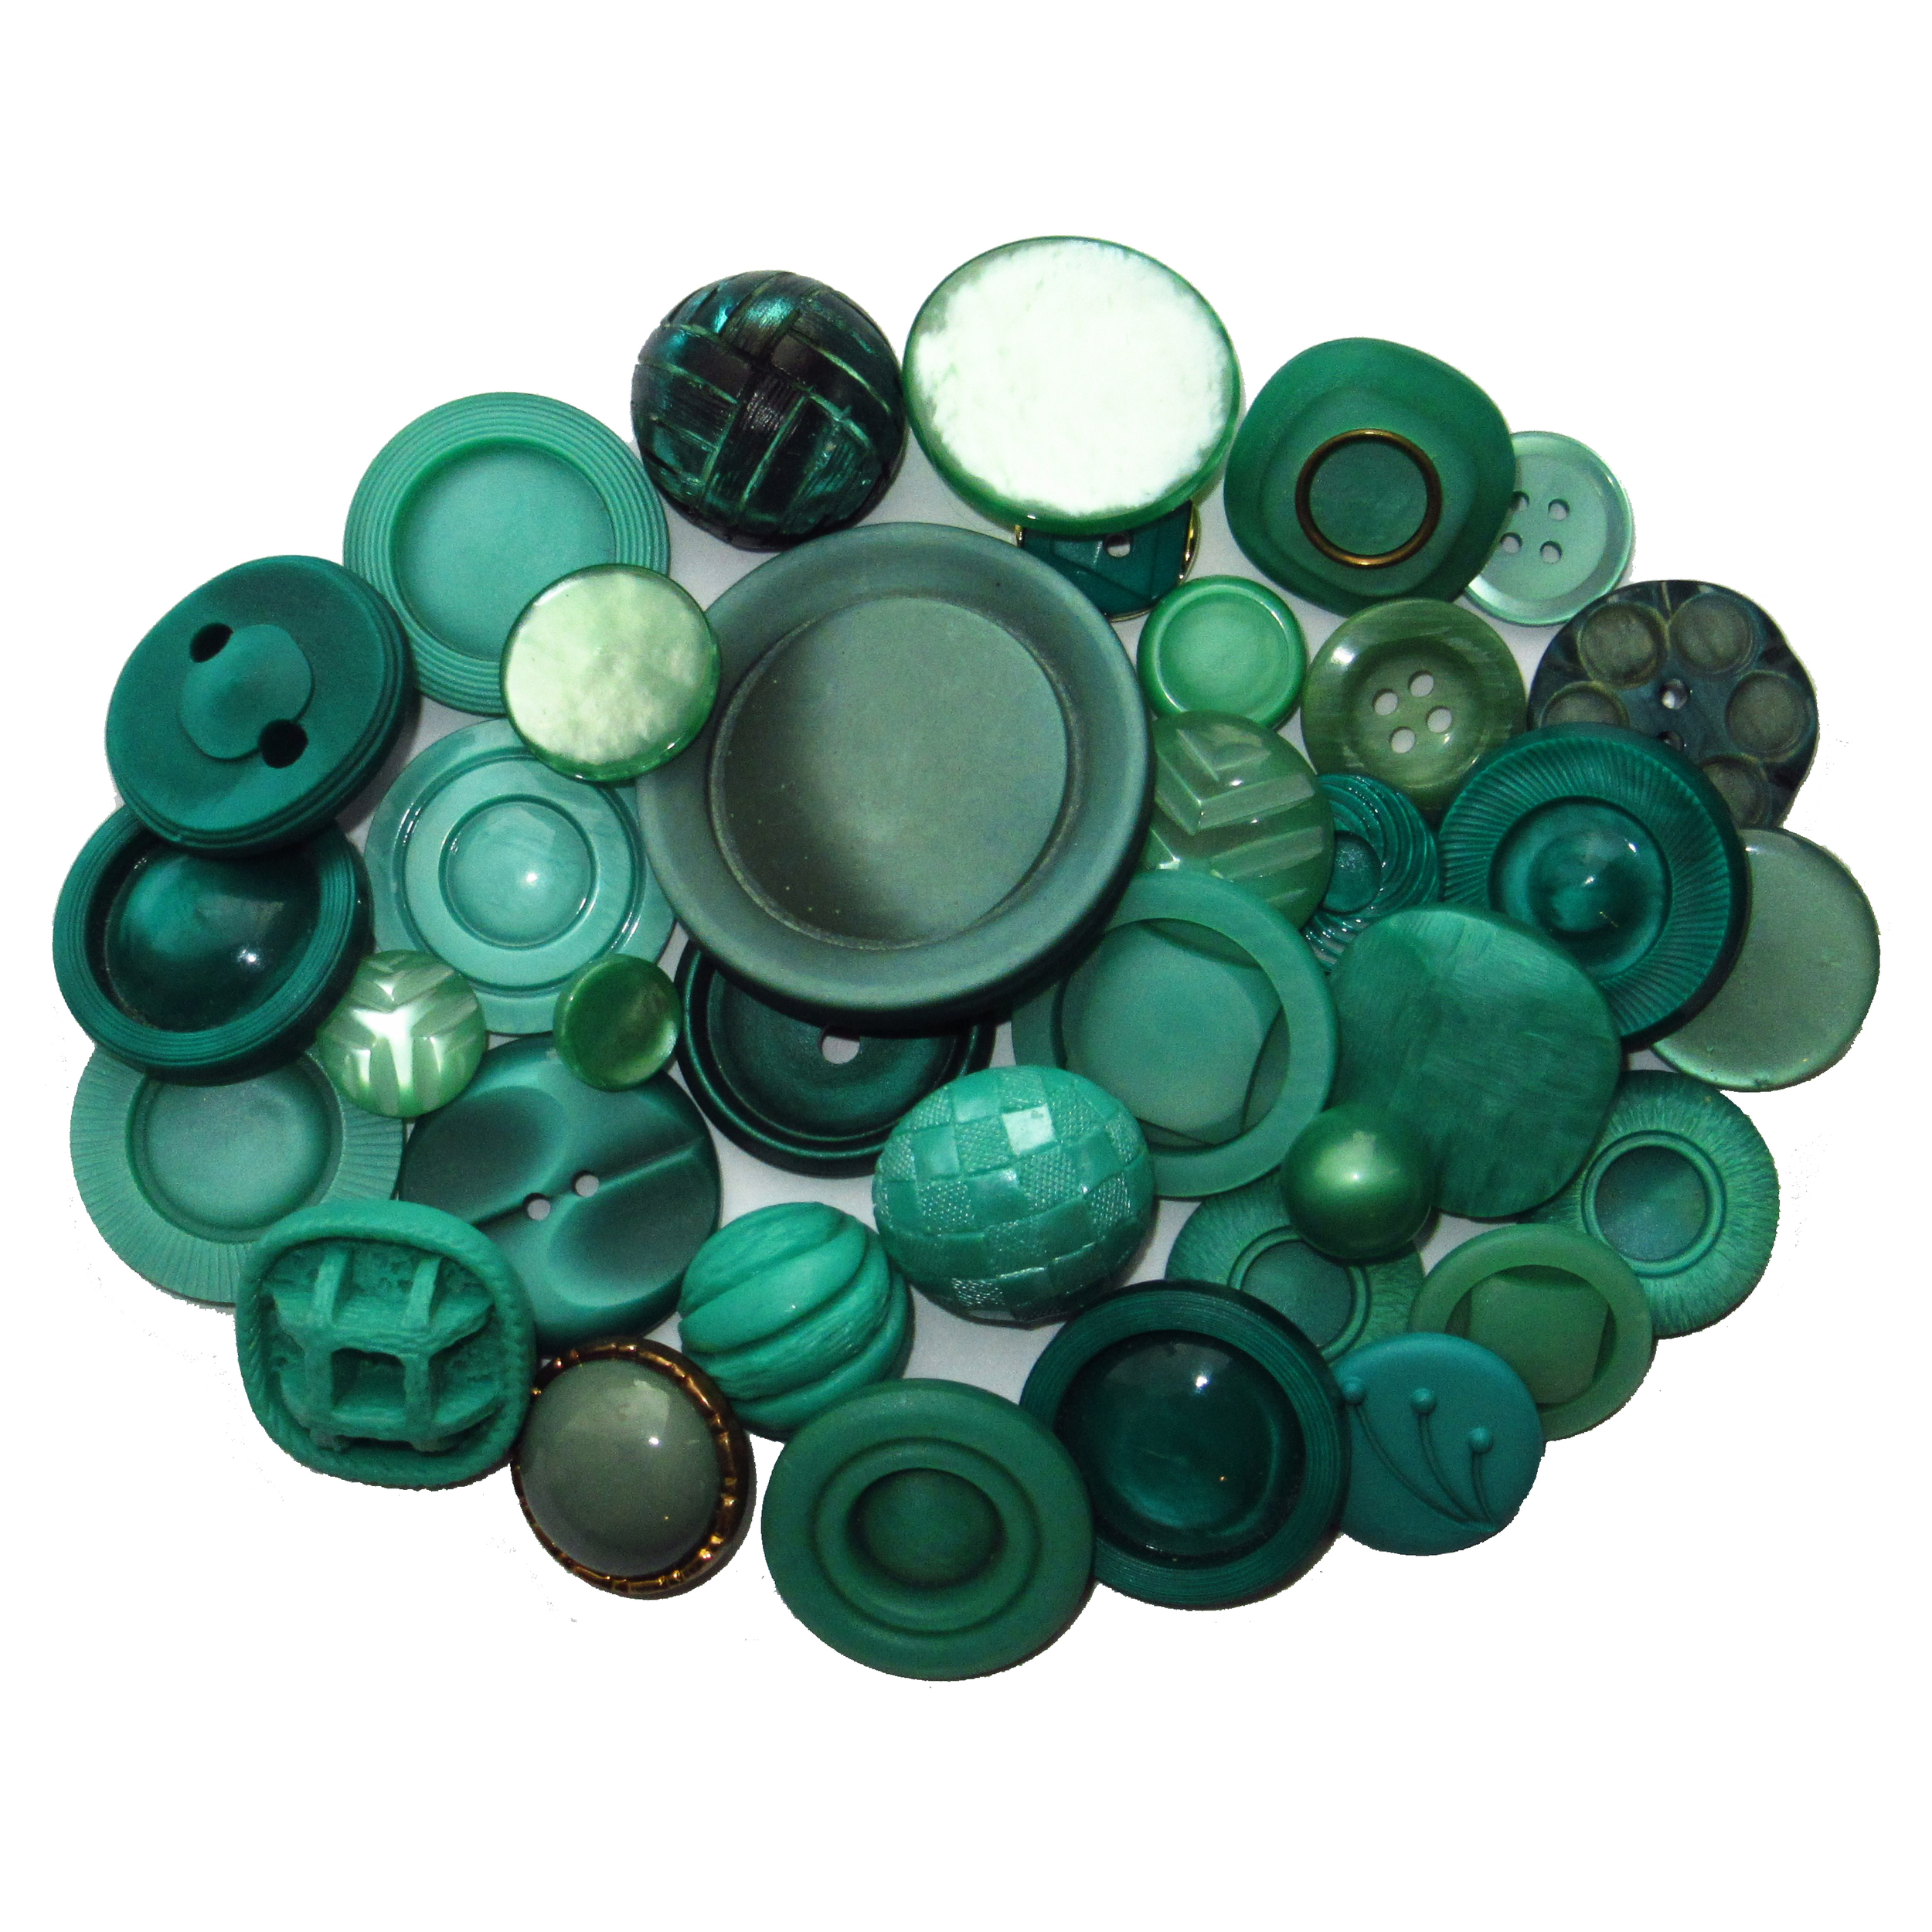 Boutons vert turquoise